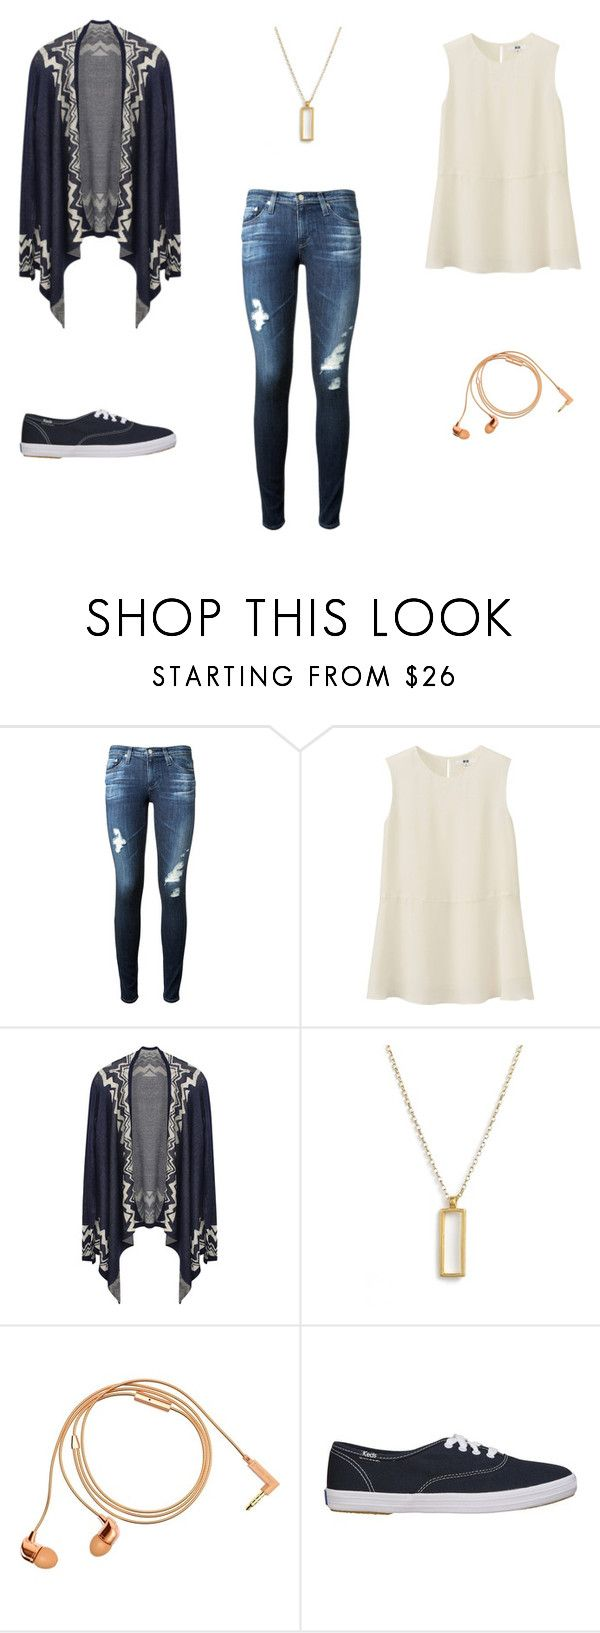 """""""Hamburg 3"""" by lamaunicorn ❤ liked on Polyvore featuring AG Adriano Goldschmied, Uniqlo, Dogeared and Happy Plugs"""